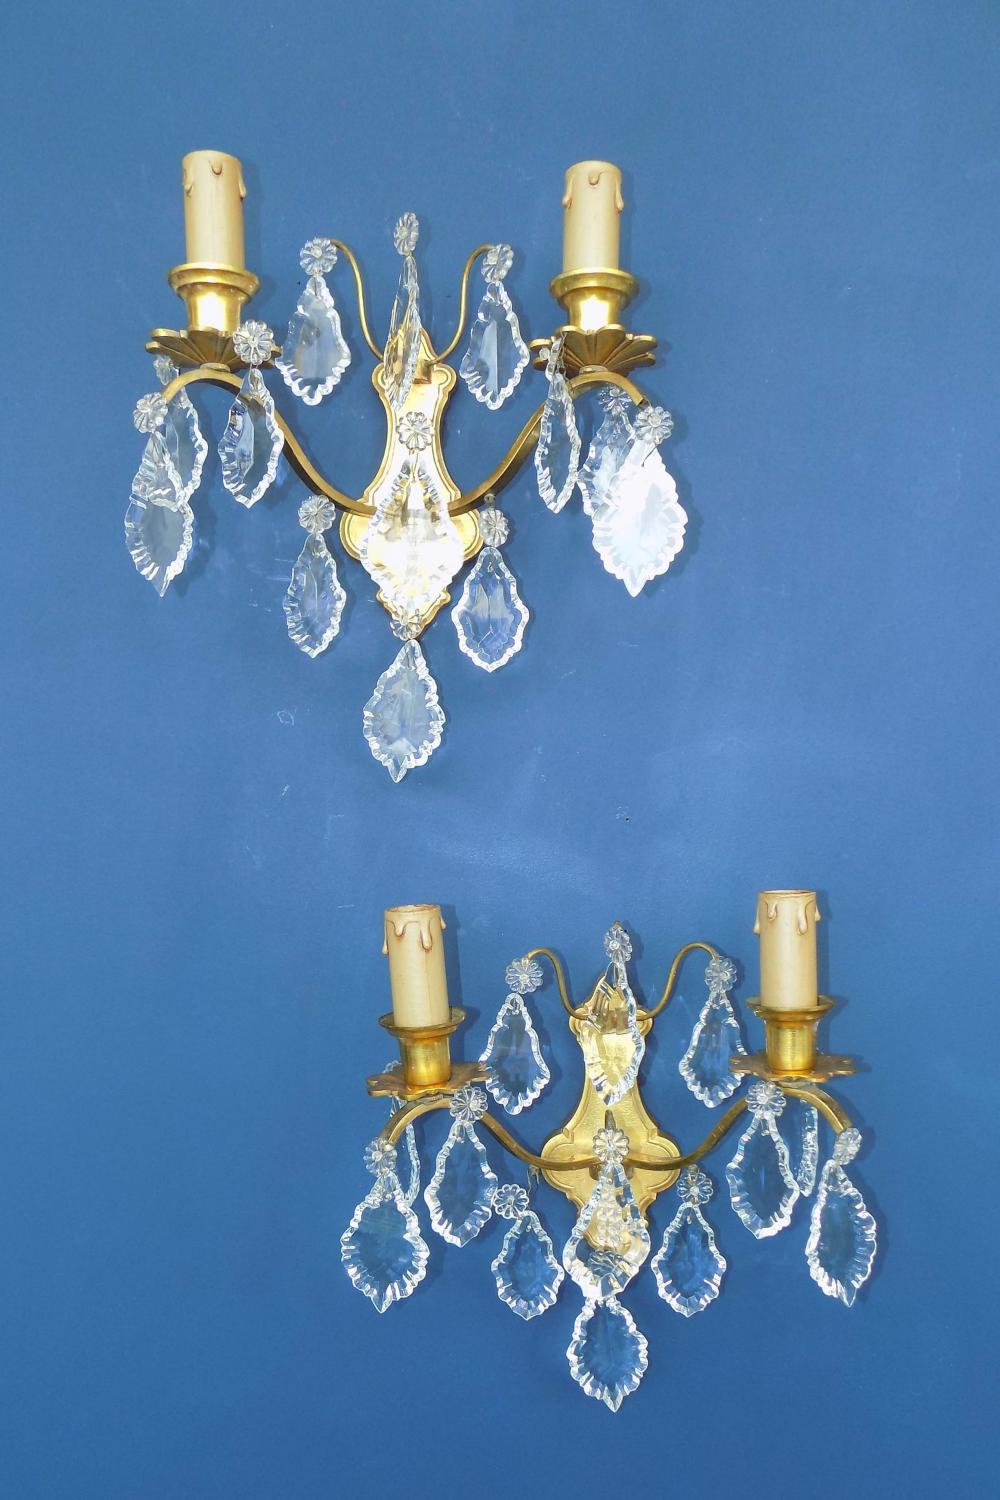 1930s Brass Crystal Wall Sconce In Wall Lights